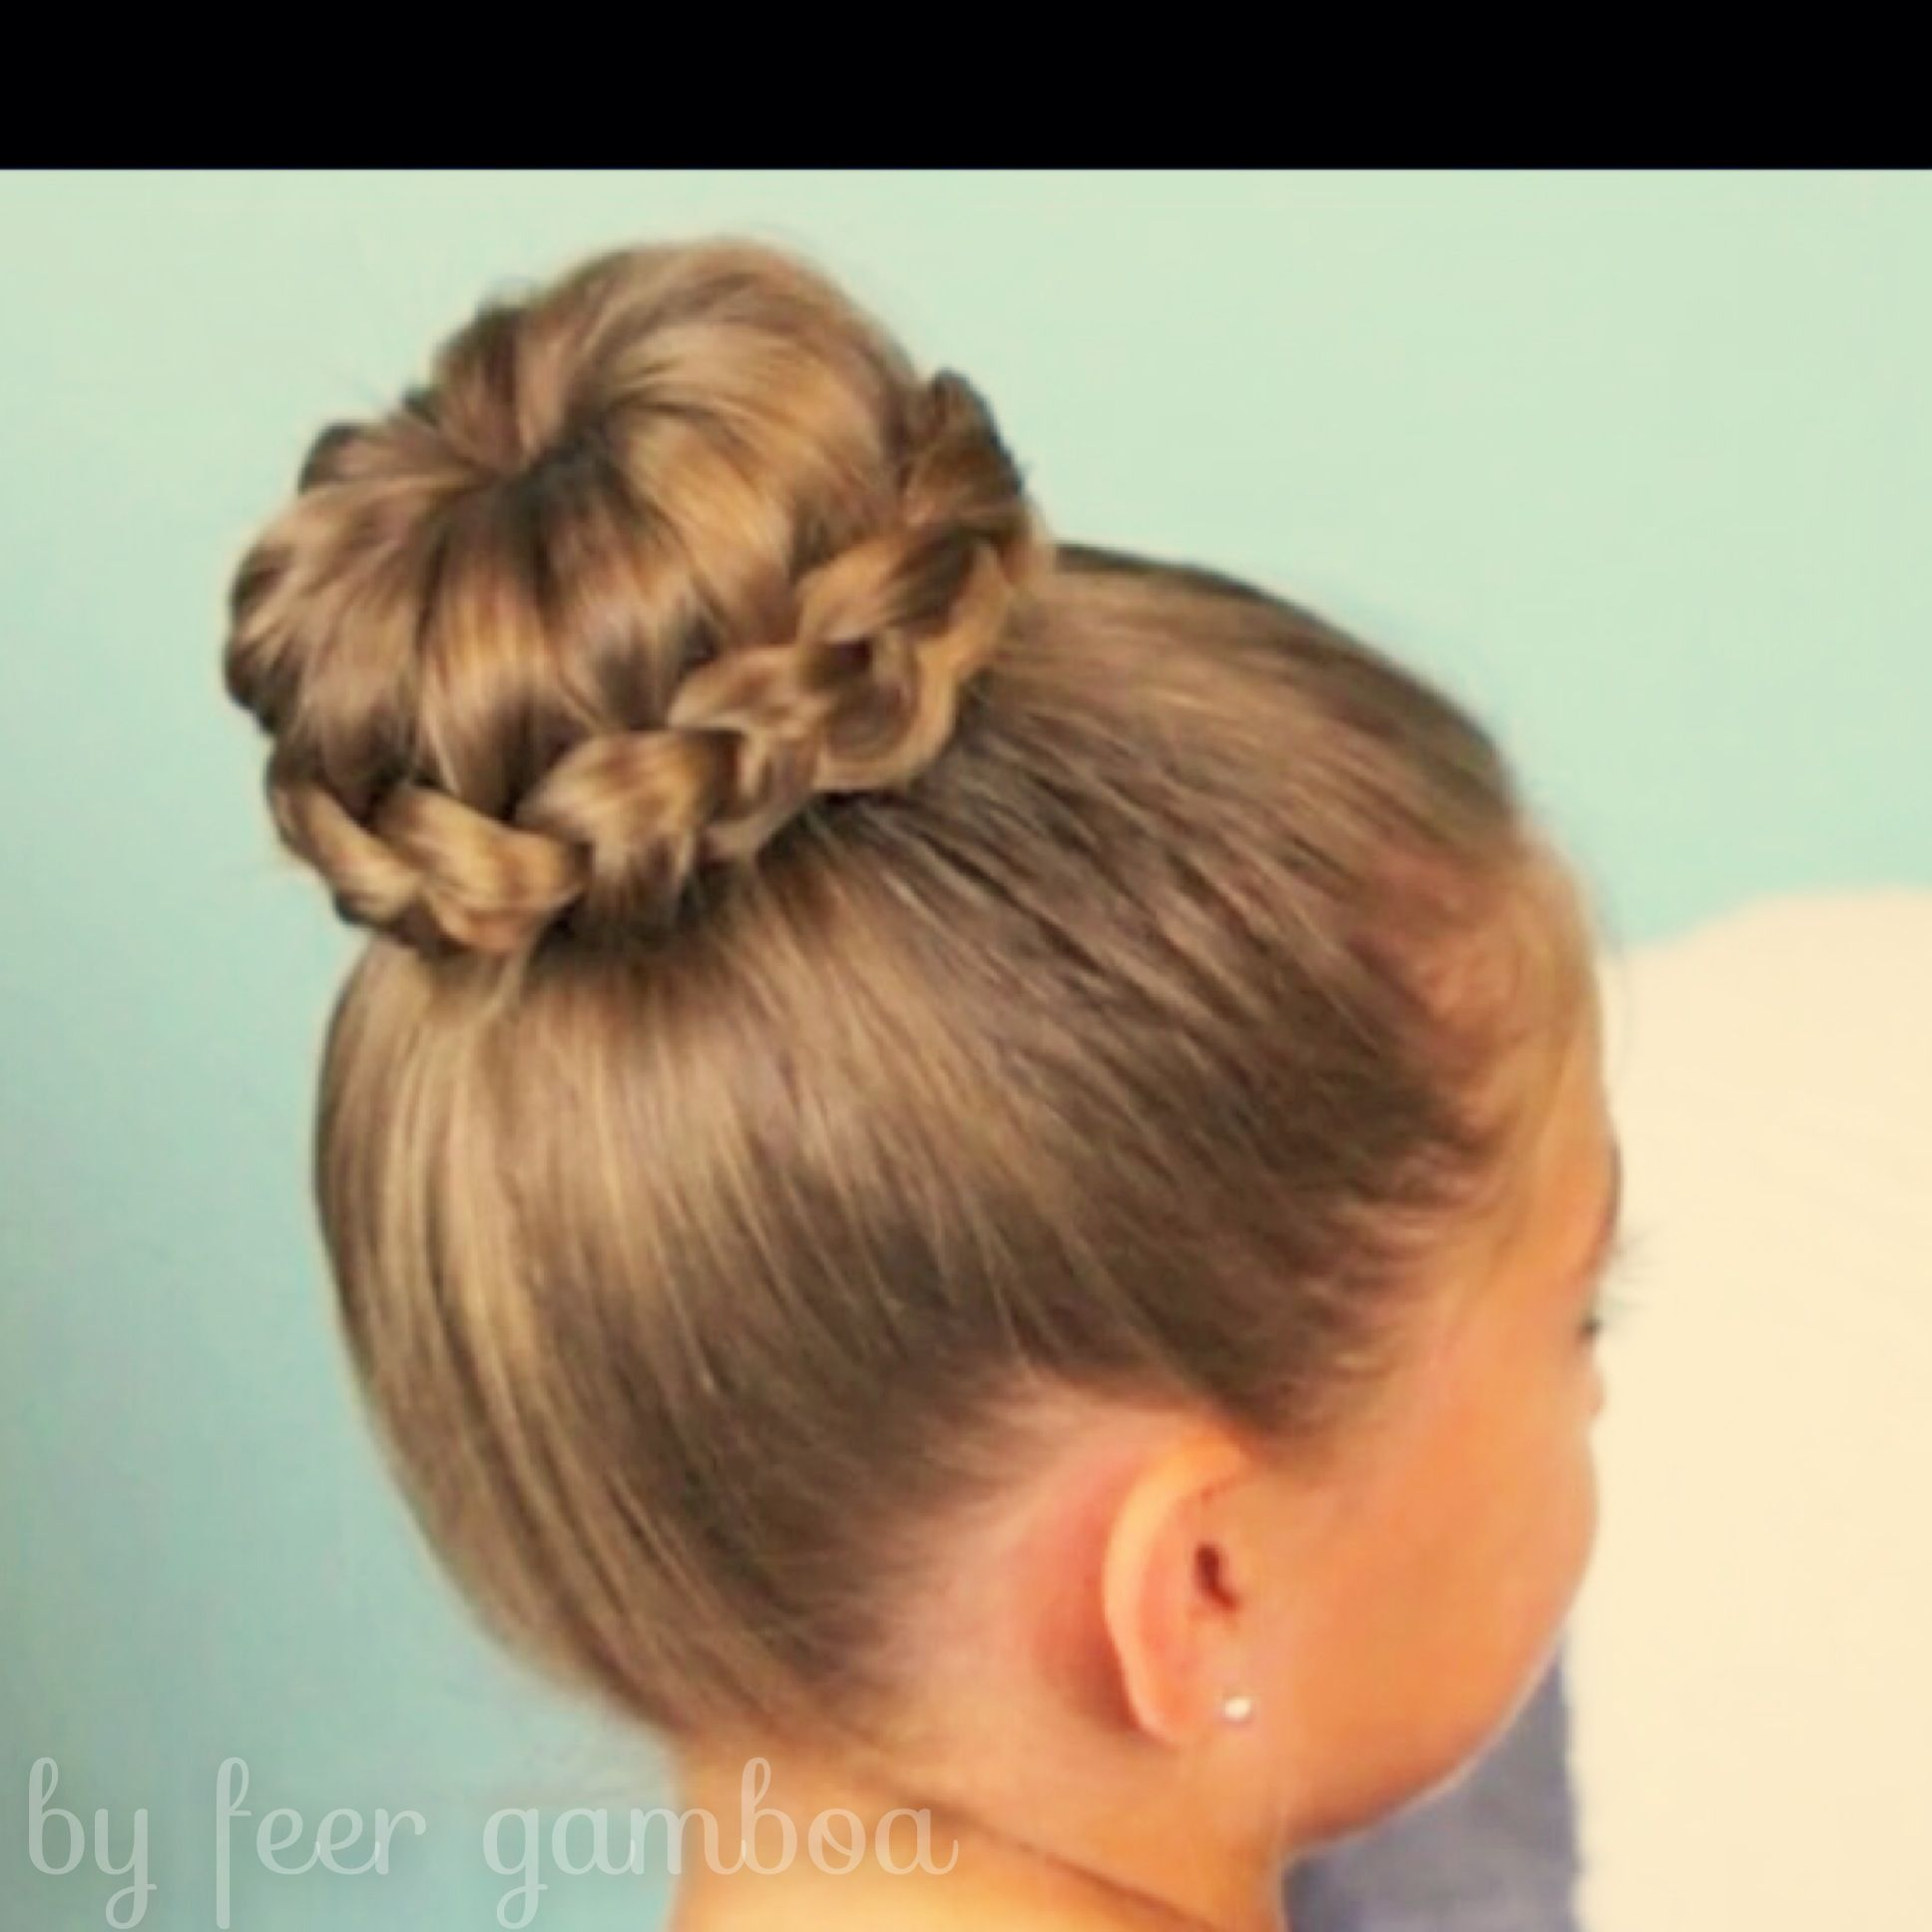 Pretty hairstyle d hair pinterest hair style girl hairstyles